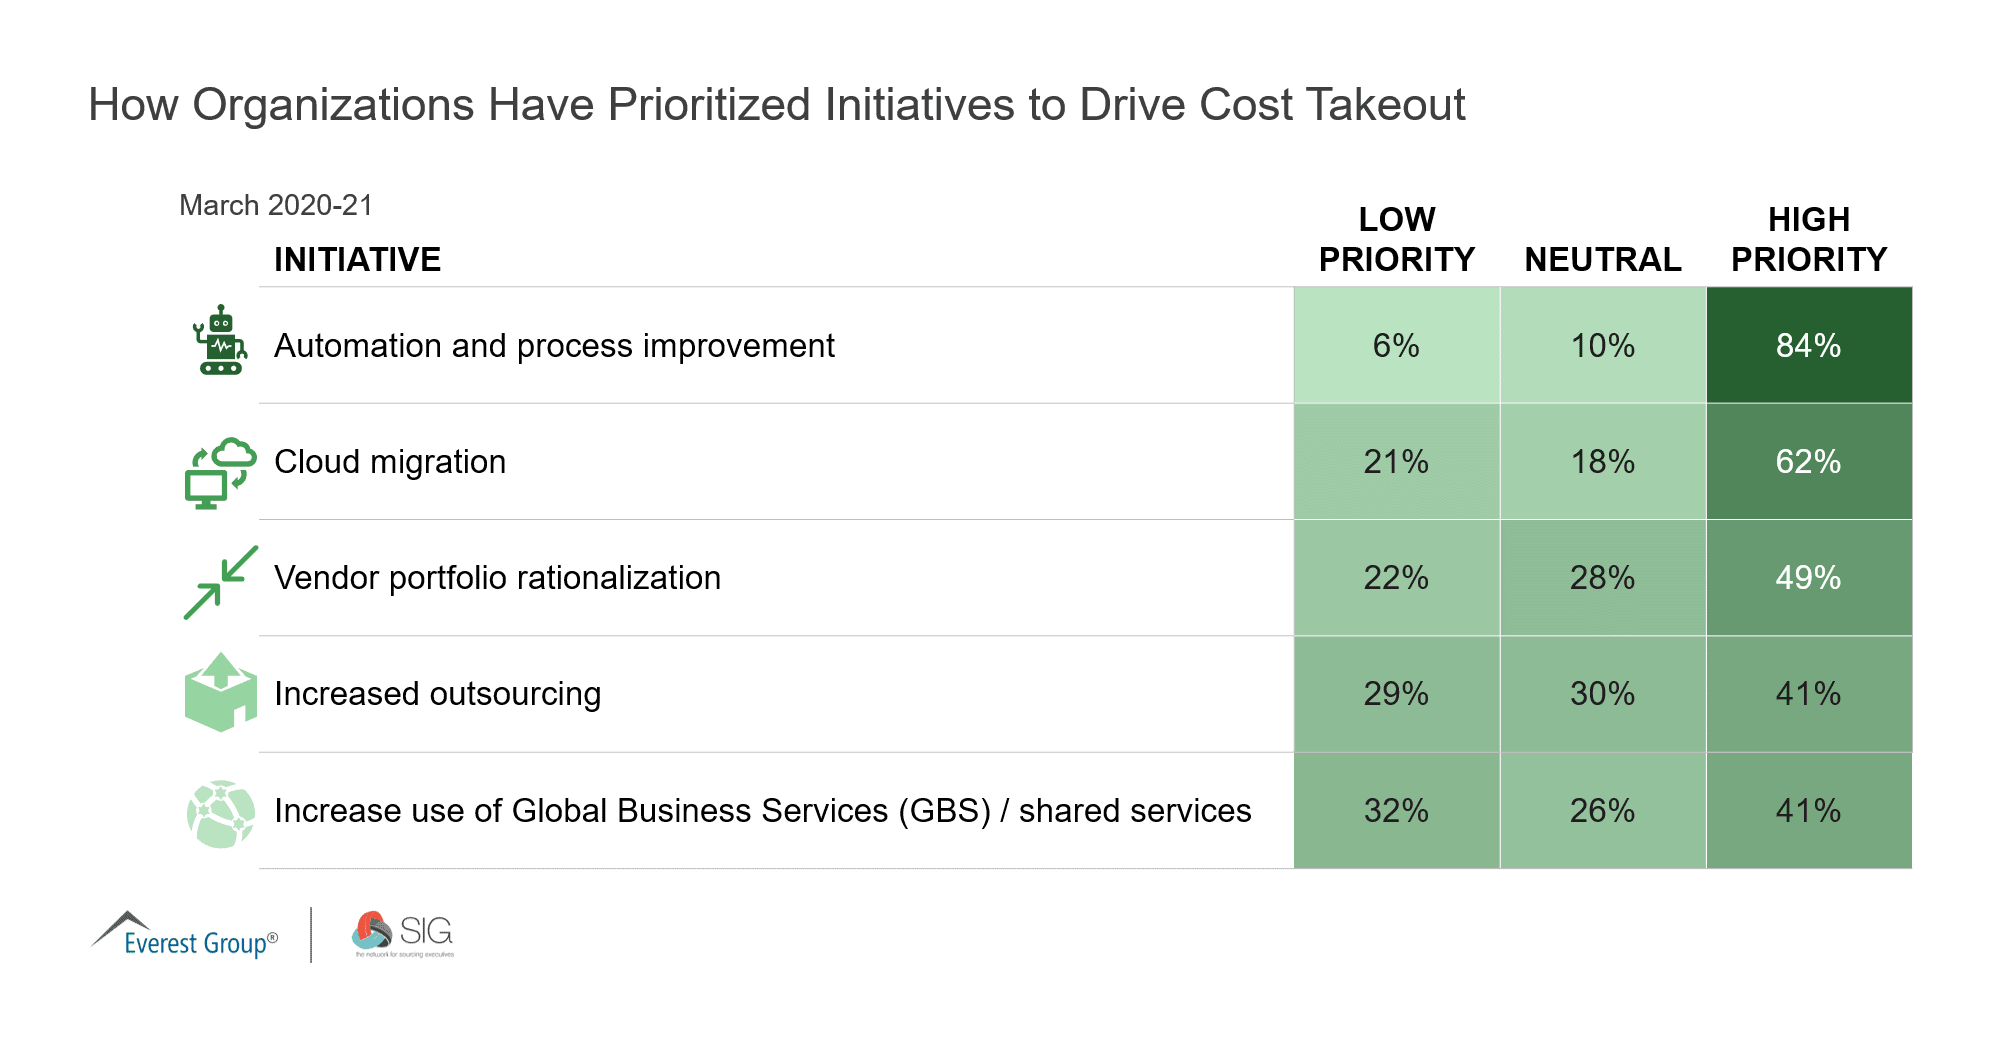 How Organizations Have Prioritized Initiatives to Drive Cost Takeout